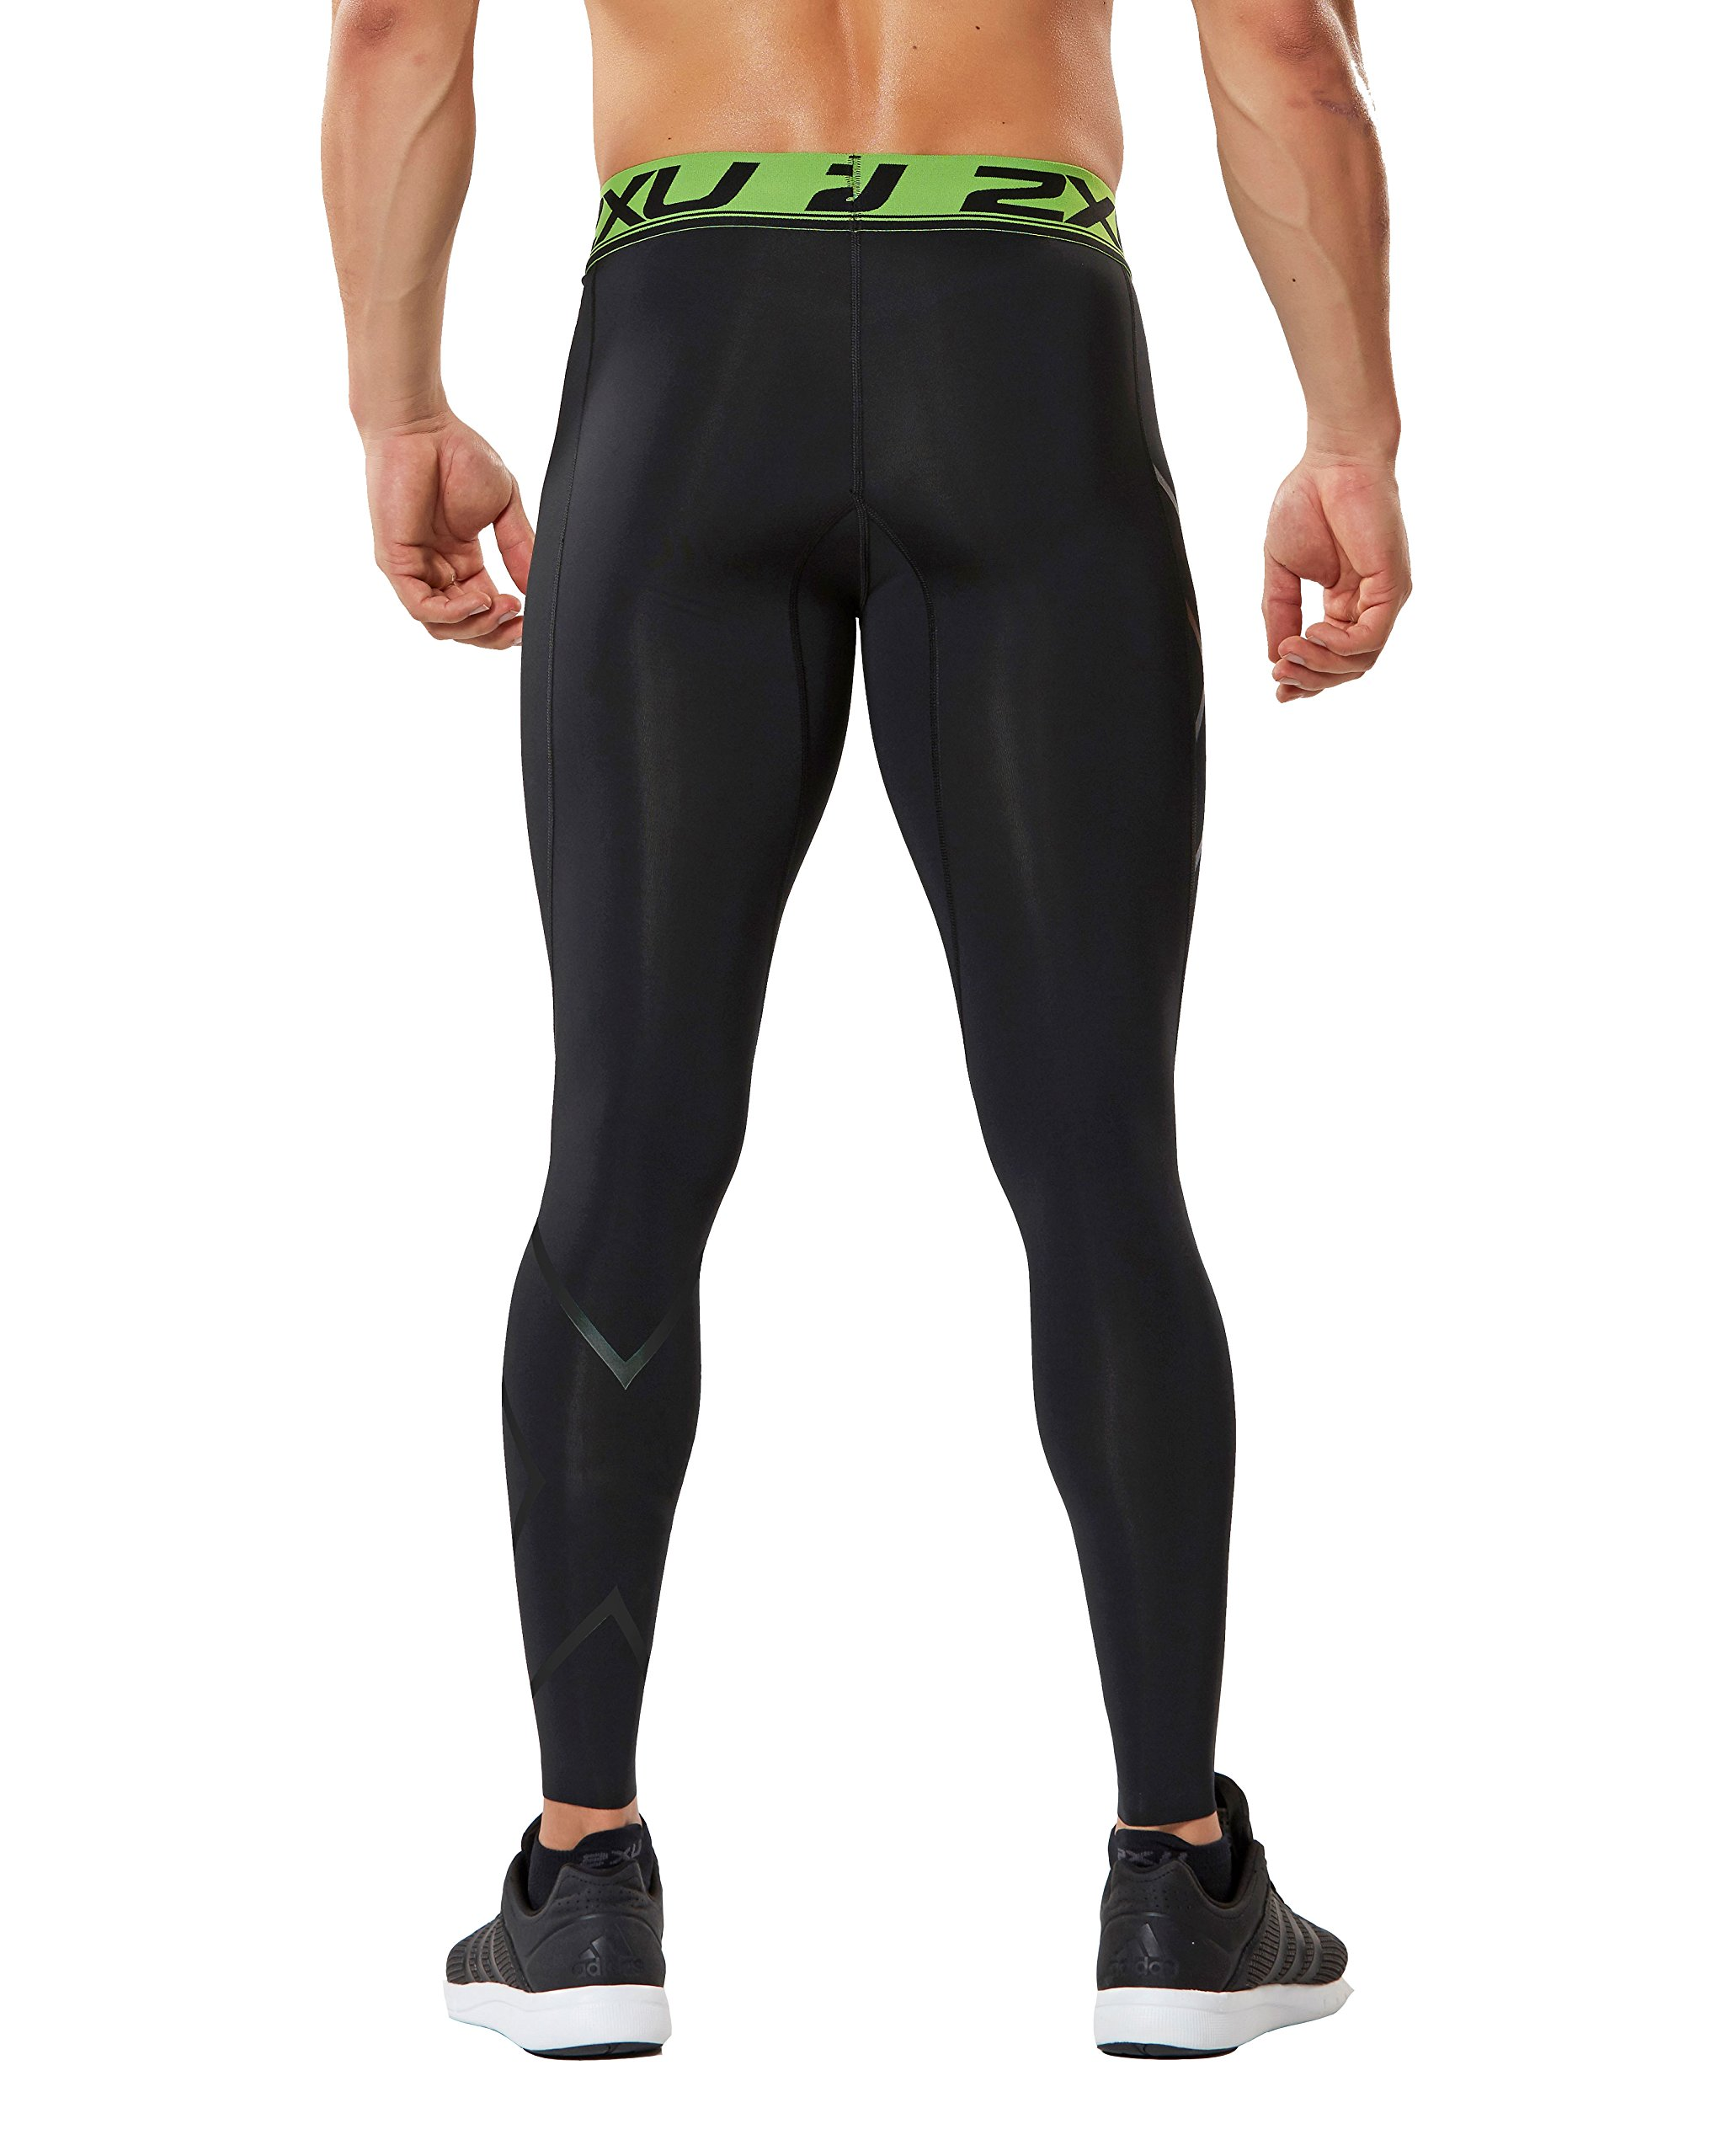 2XU Men's Refresh Recovery Compression Tights (Black/Nero, XX Large) by 2XU (Image #3)